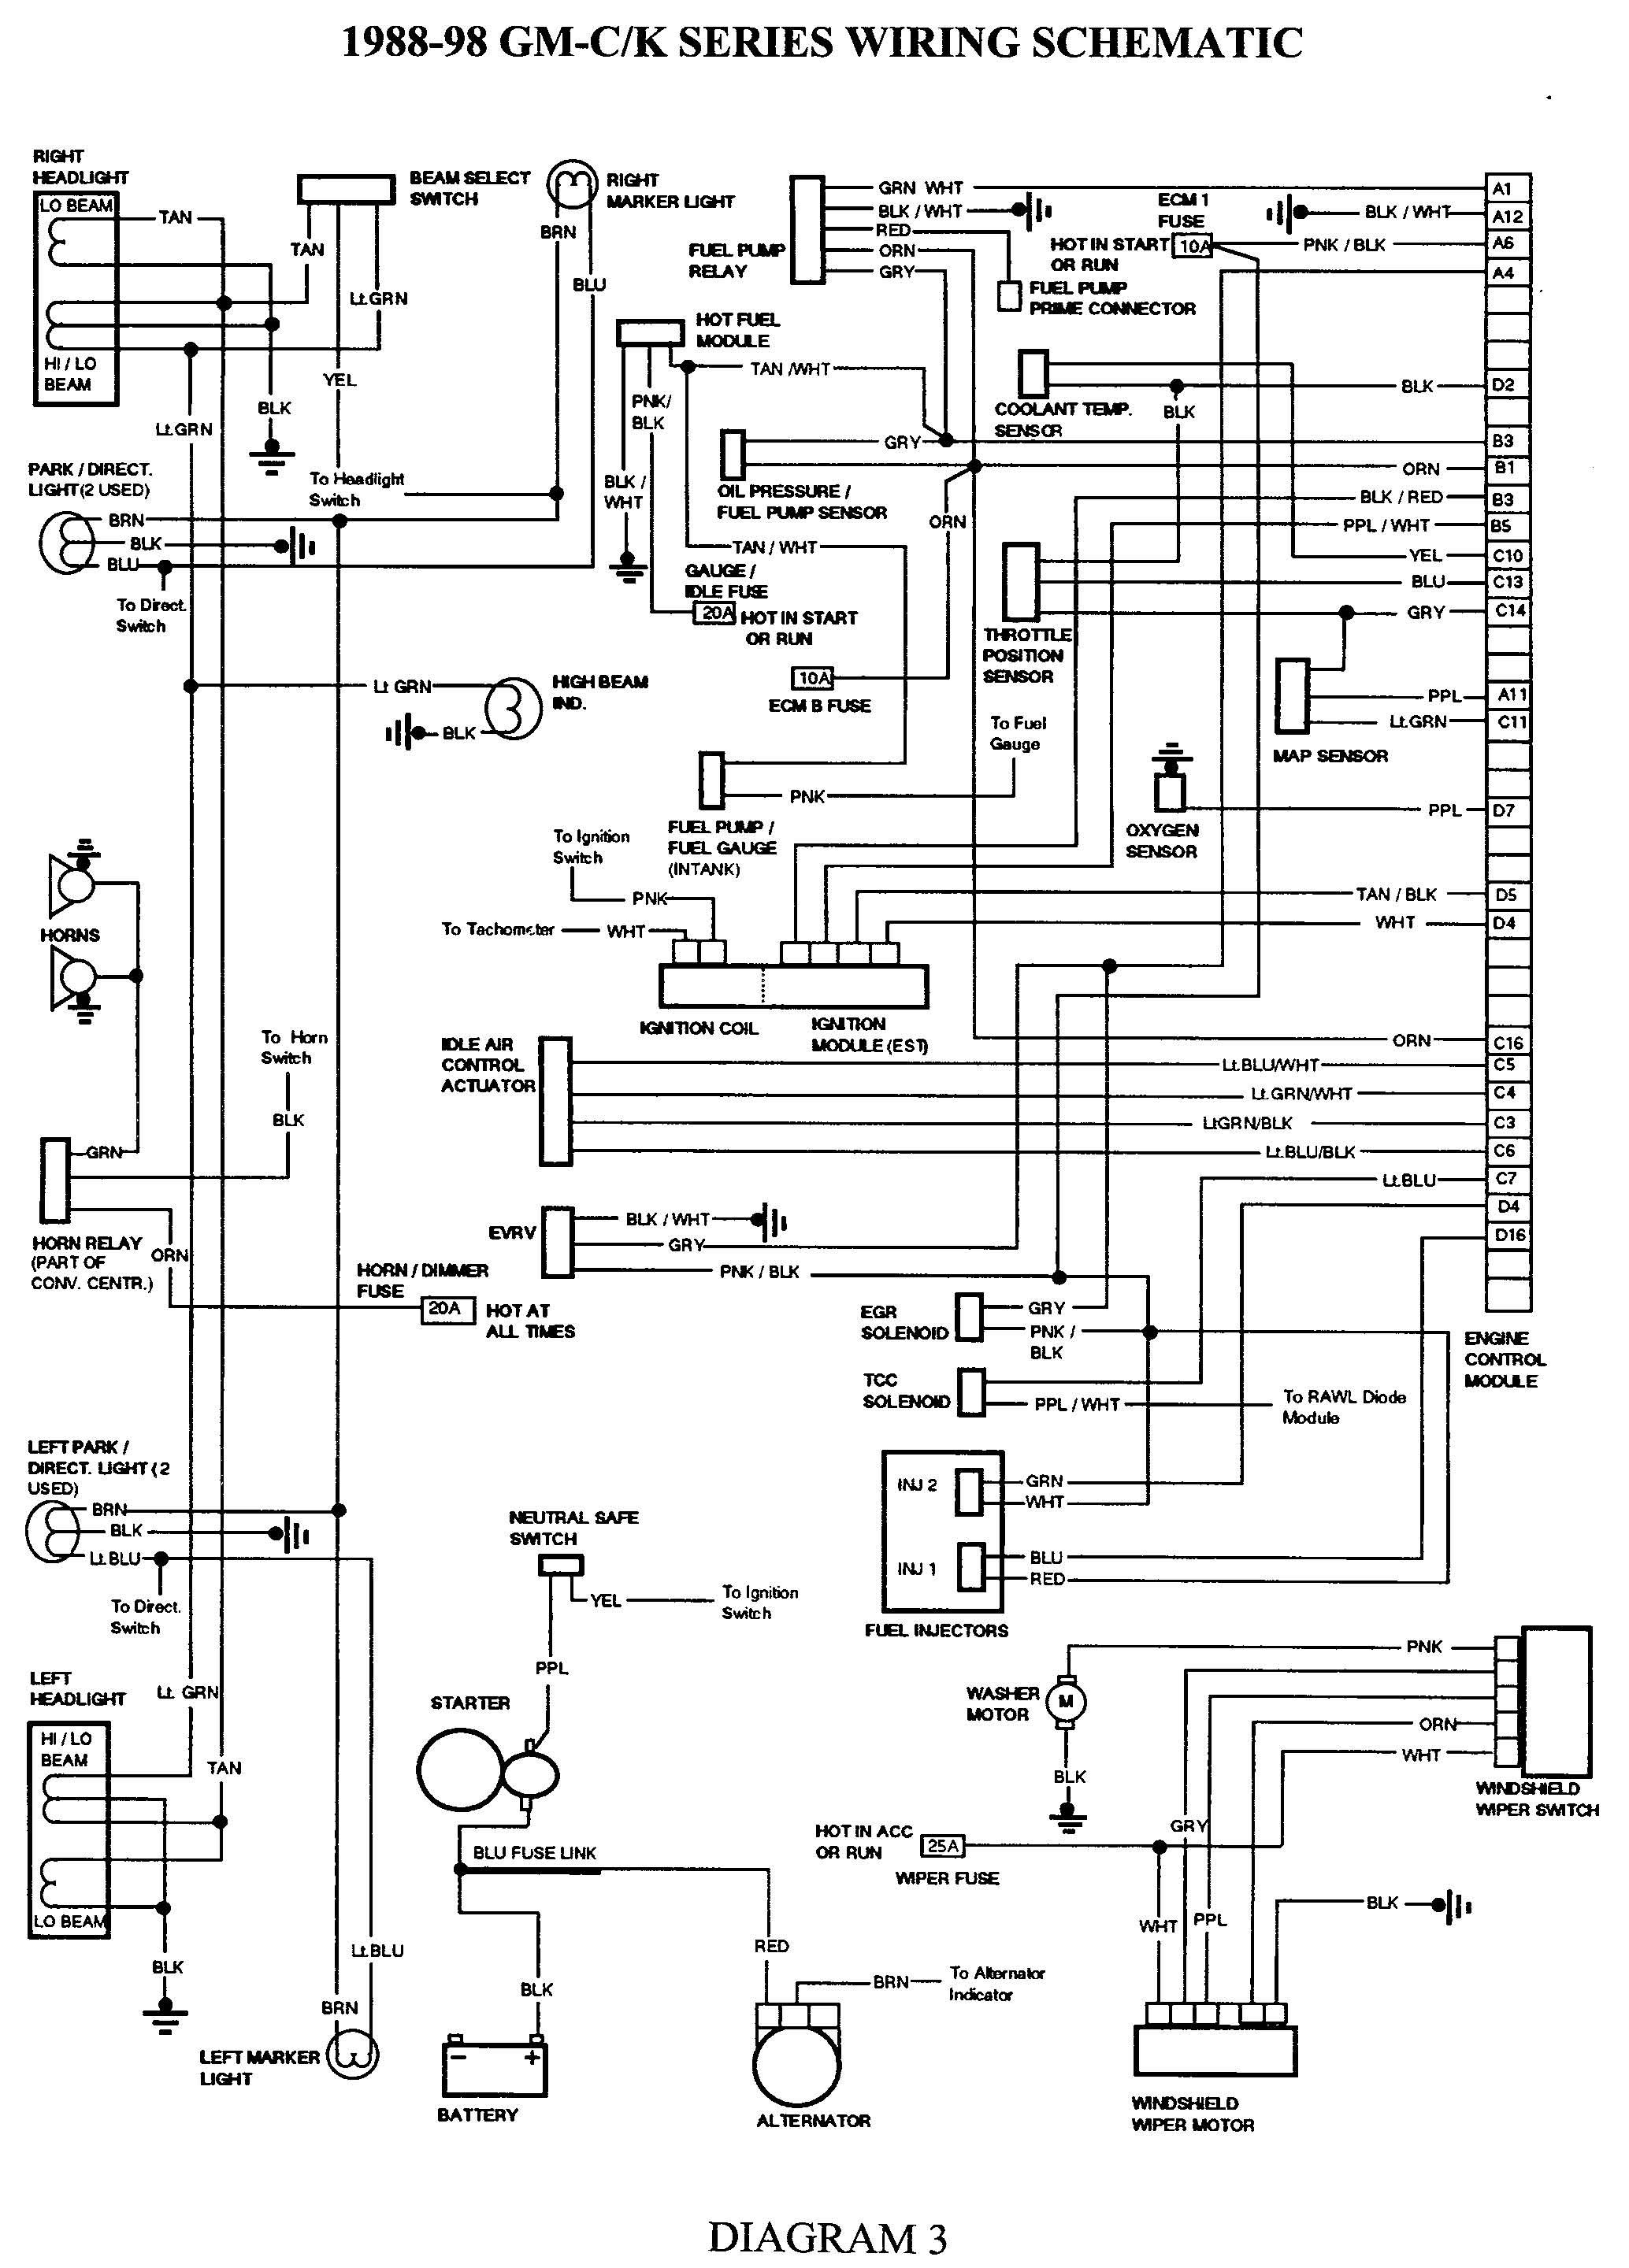 1994 suburban rear ac wiring diagram automotive wiring diagrams fuel pump wiring diagram 2001 suburban ac wiring diagram [ 2068 x 2880 Pixel ]